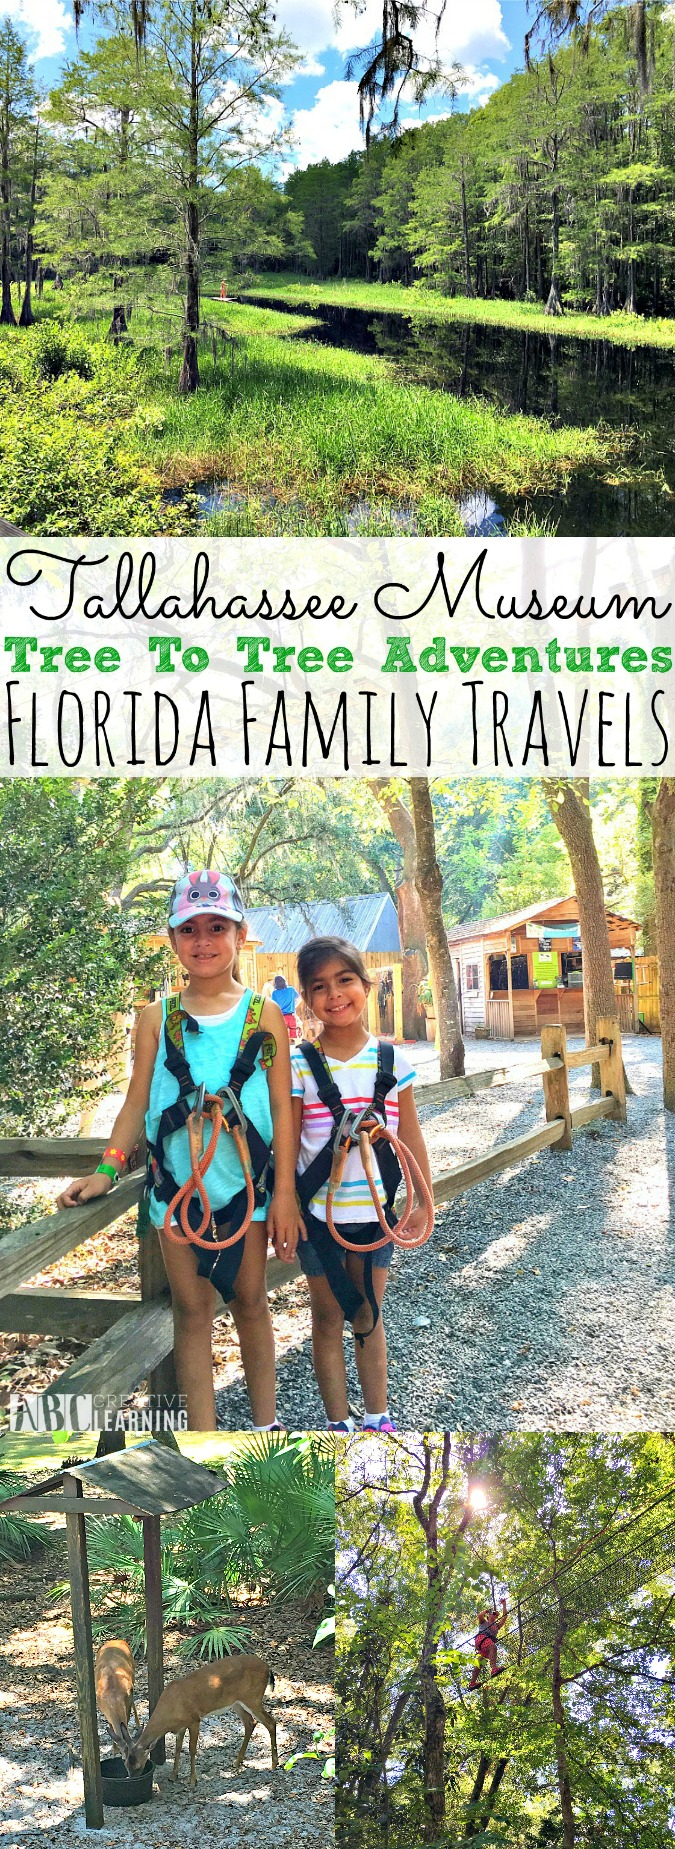 Tallahassee Museum Tree to Tree Adventures